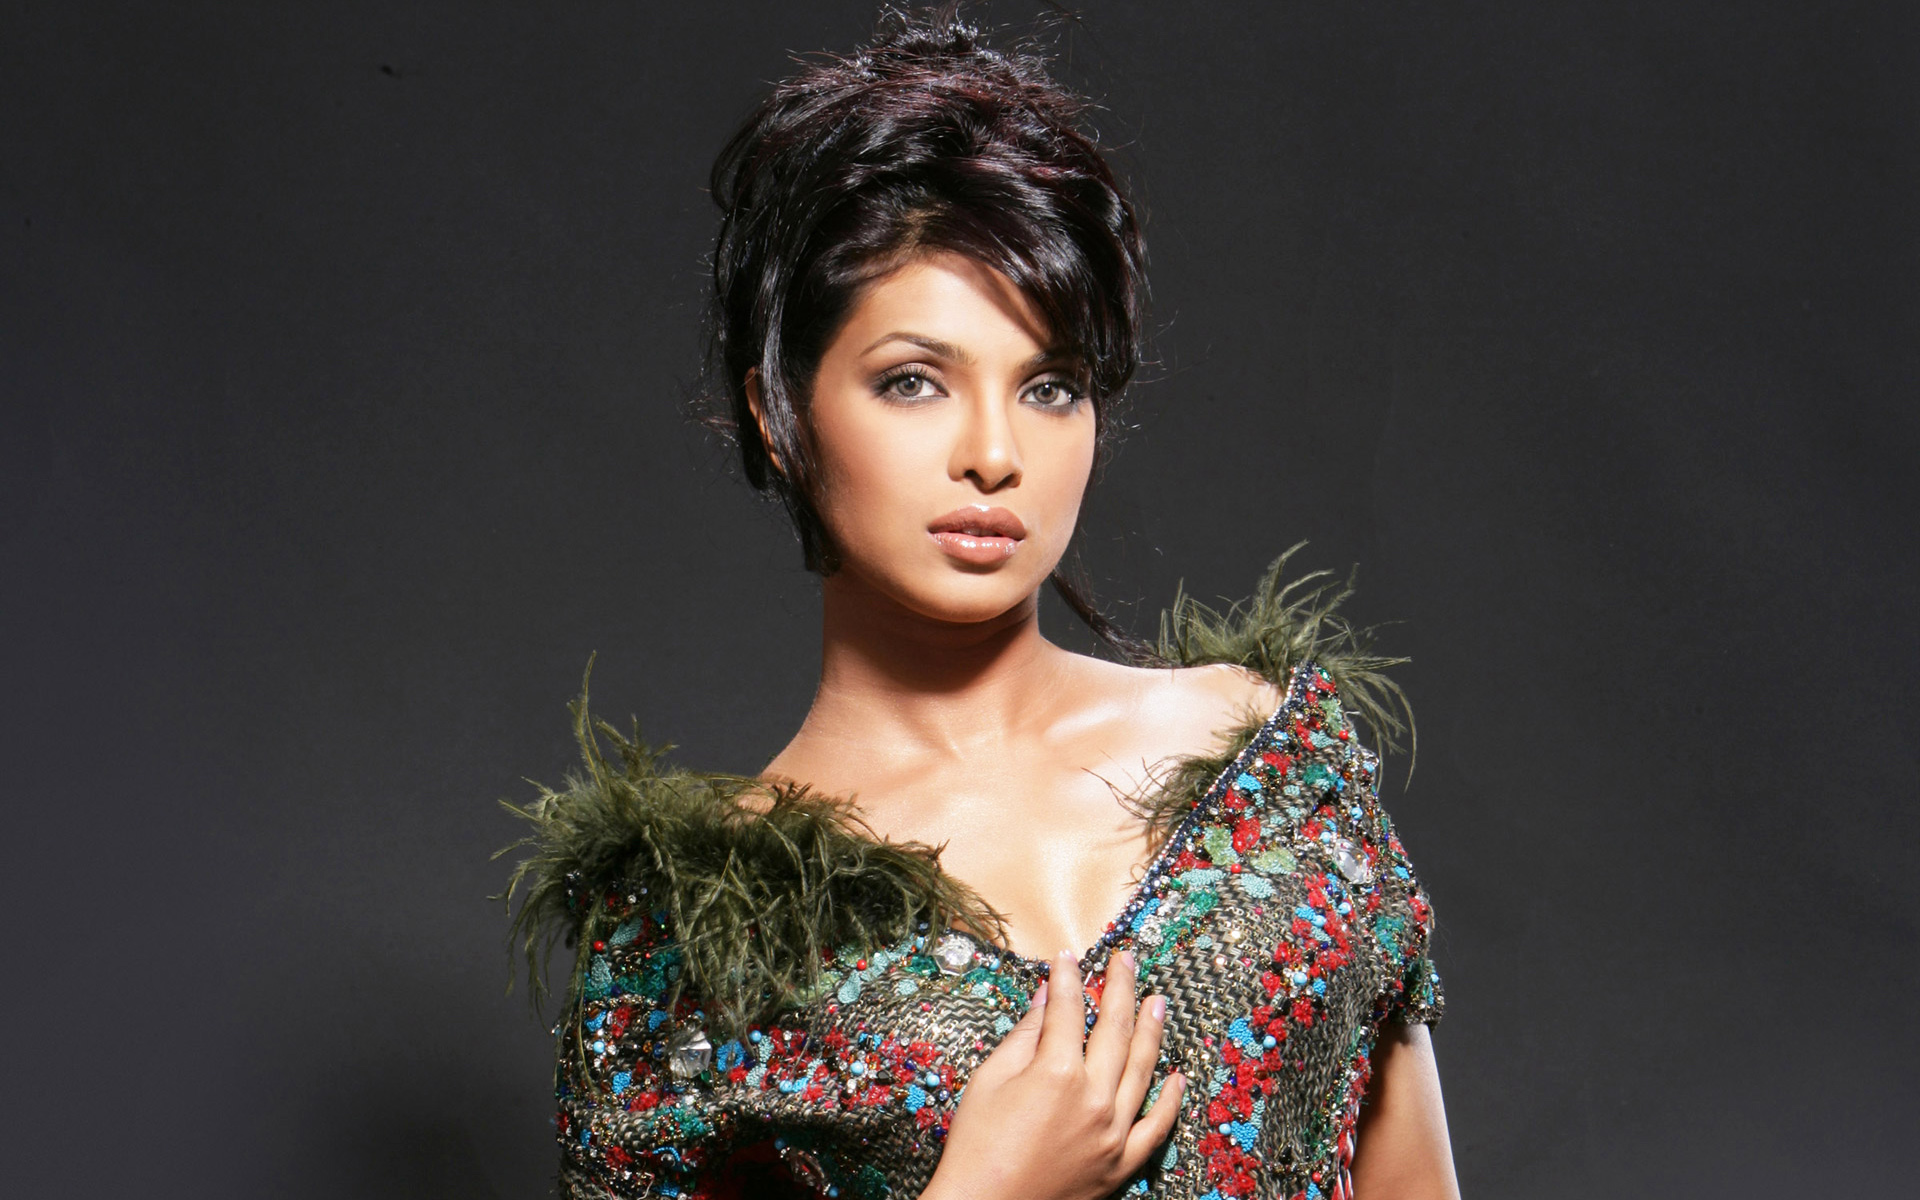 Priyanka Chopra Photoshoot